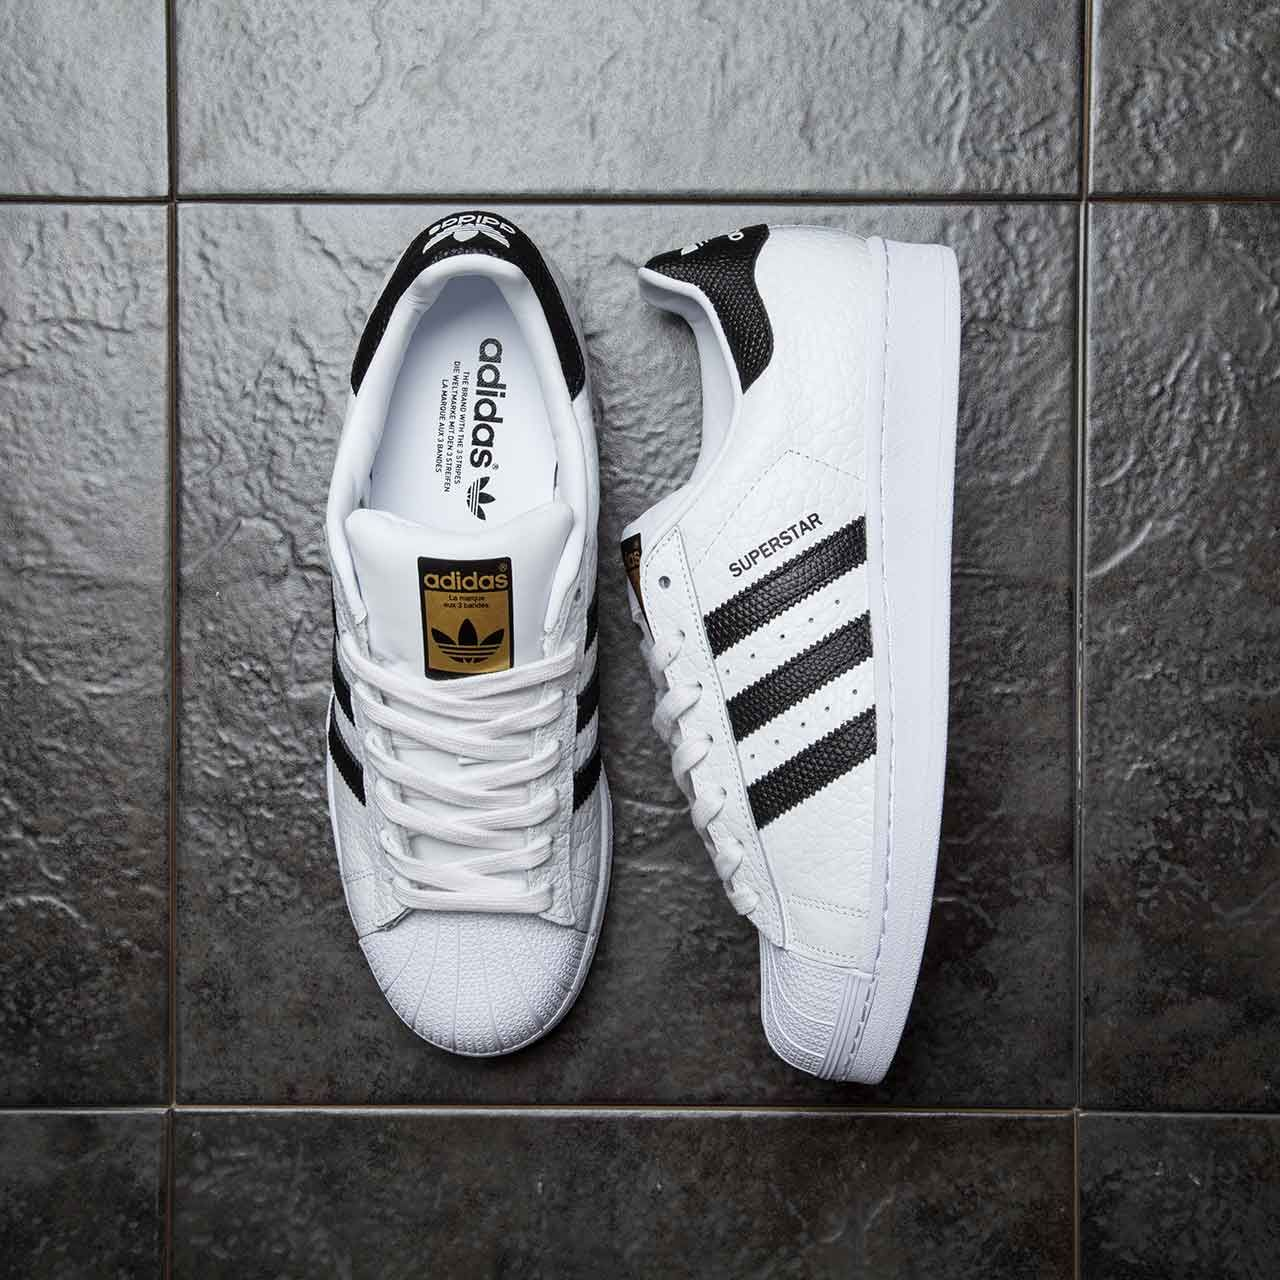 An adidas favourite, with a twist! The adidas Originals Superstar Animal Trainer in white & black.